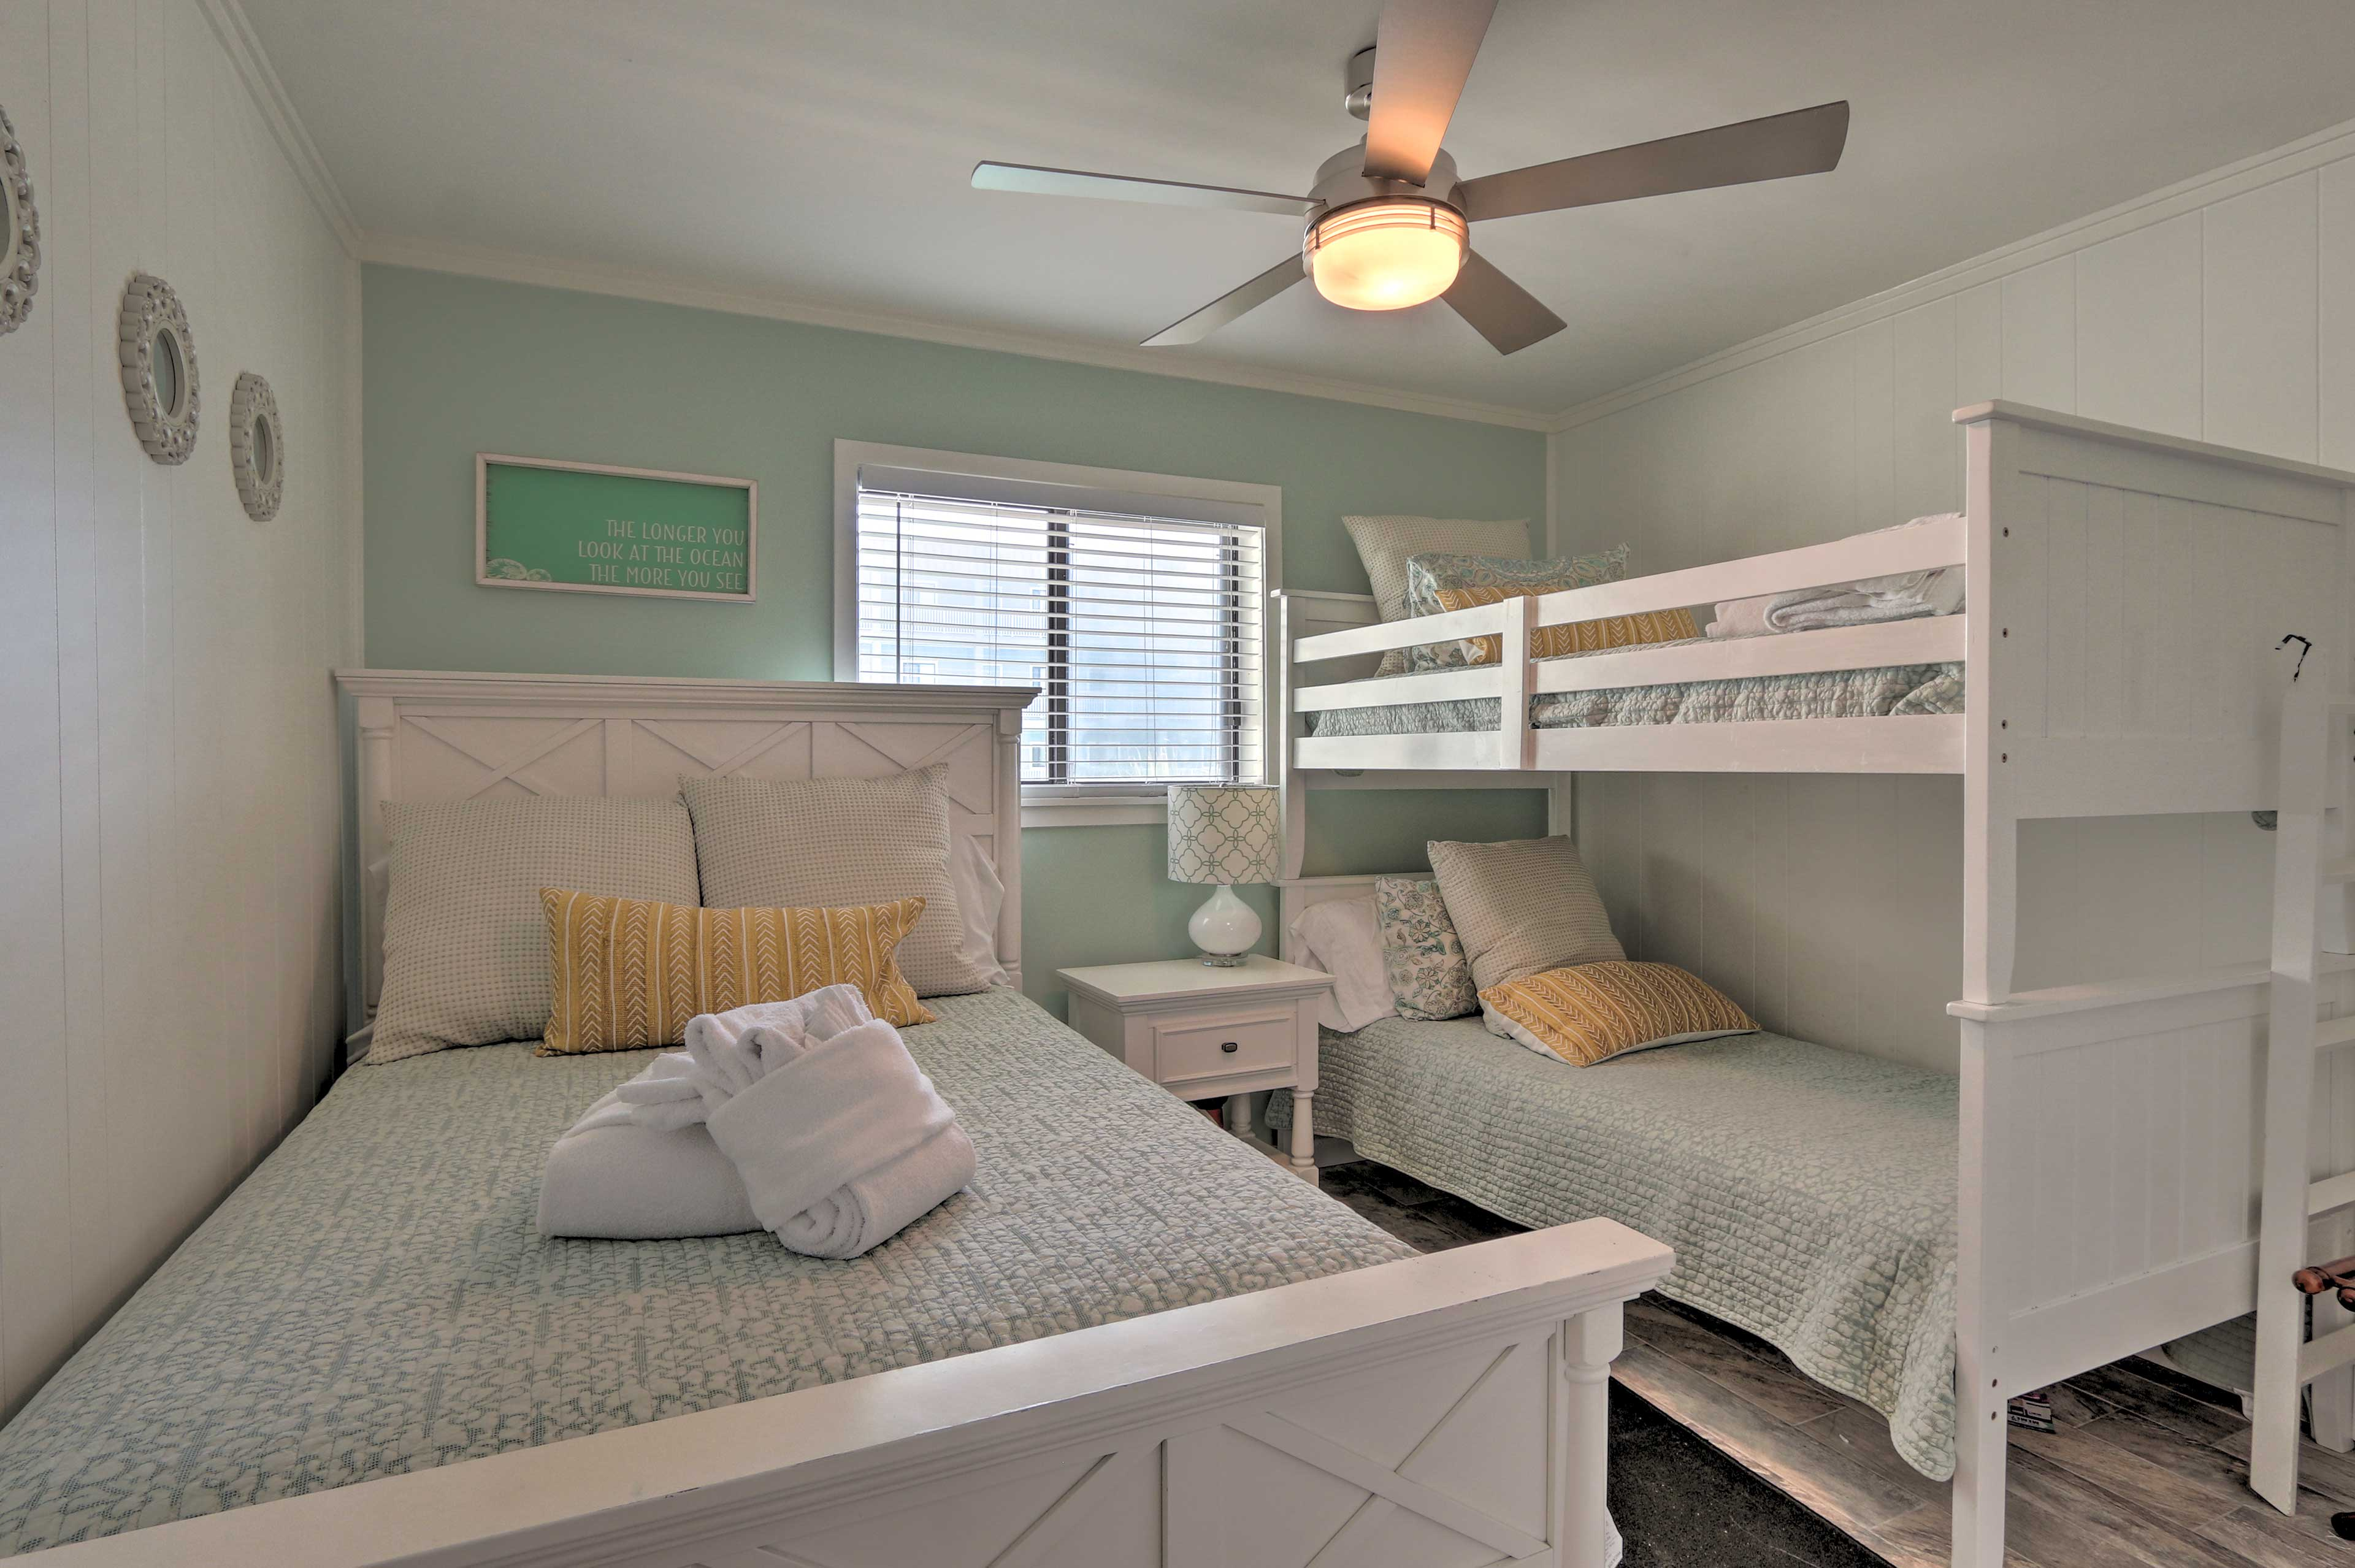 The second bedroom has a full-sized bed and a twin-over-twin bunk bed.